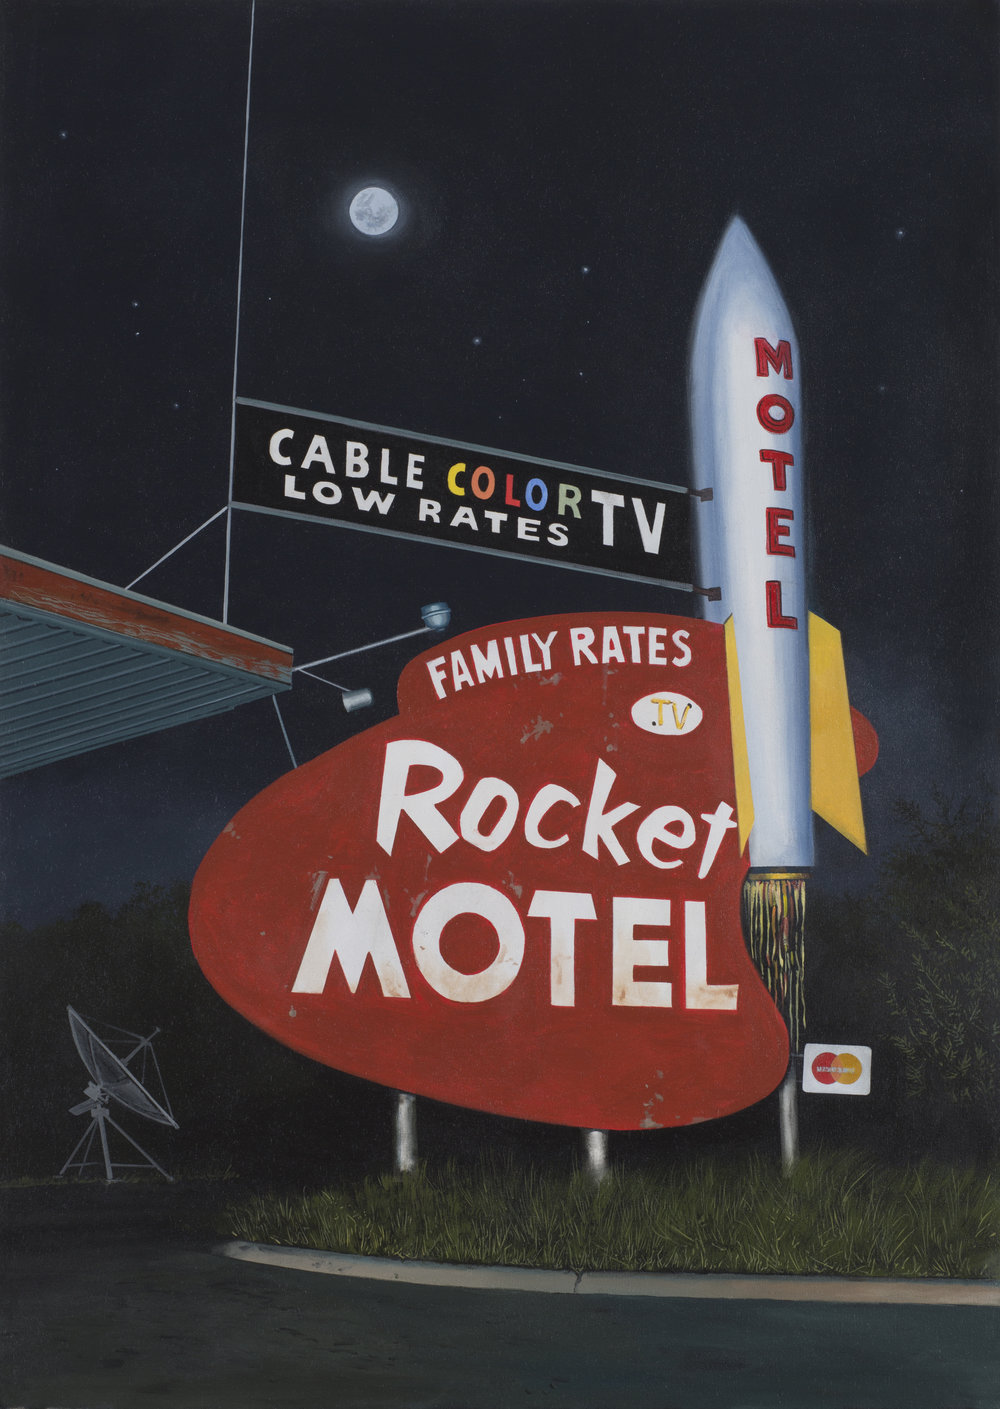 "Daniel Blagg,  Rocket Motel,  2017, oil on canvas, 55 x 38"". Contact Artspace111 to purchase."